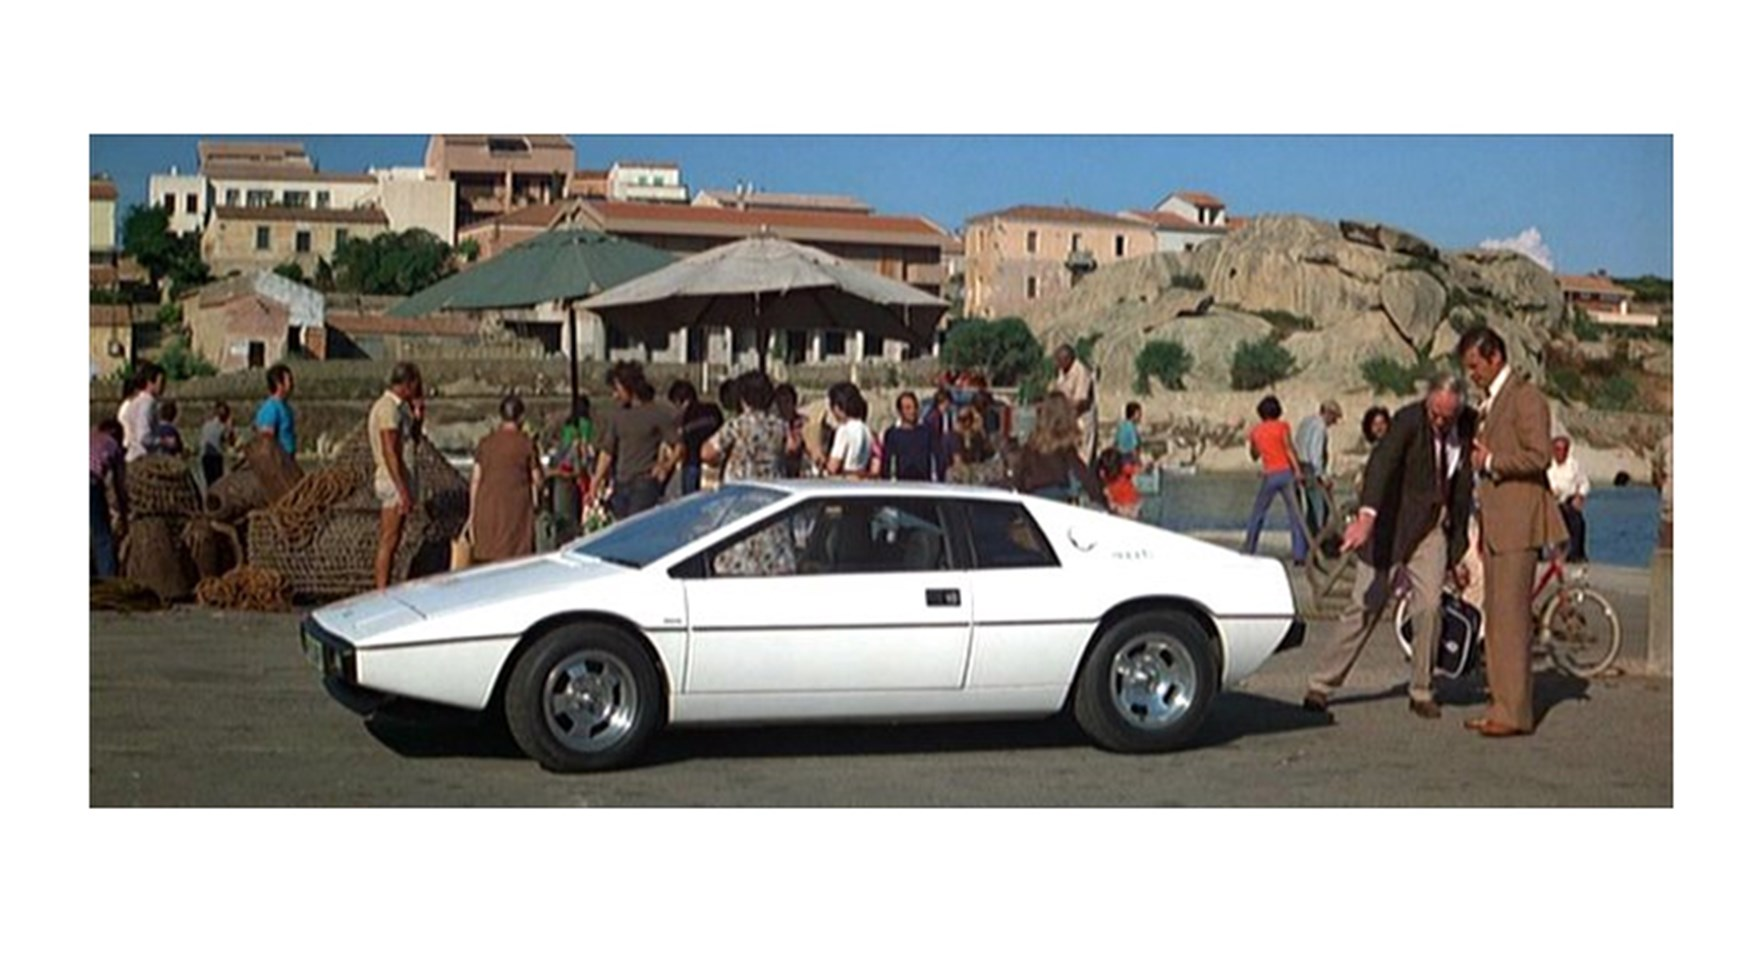 Lotus Esprit The Spy Who Loved Me By Car Magazine